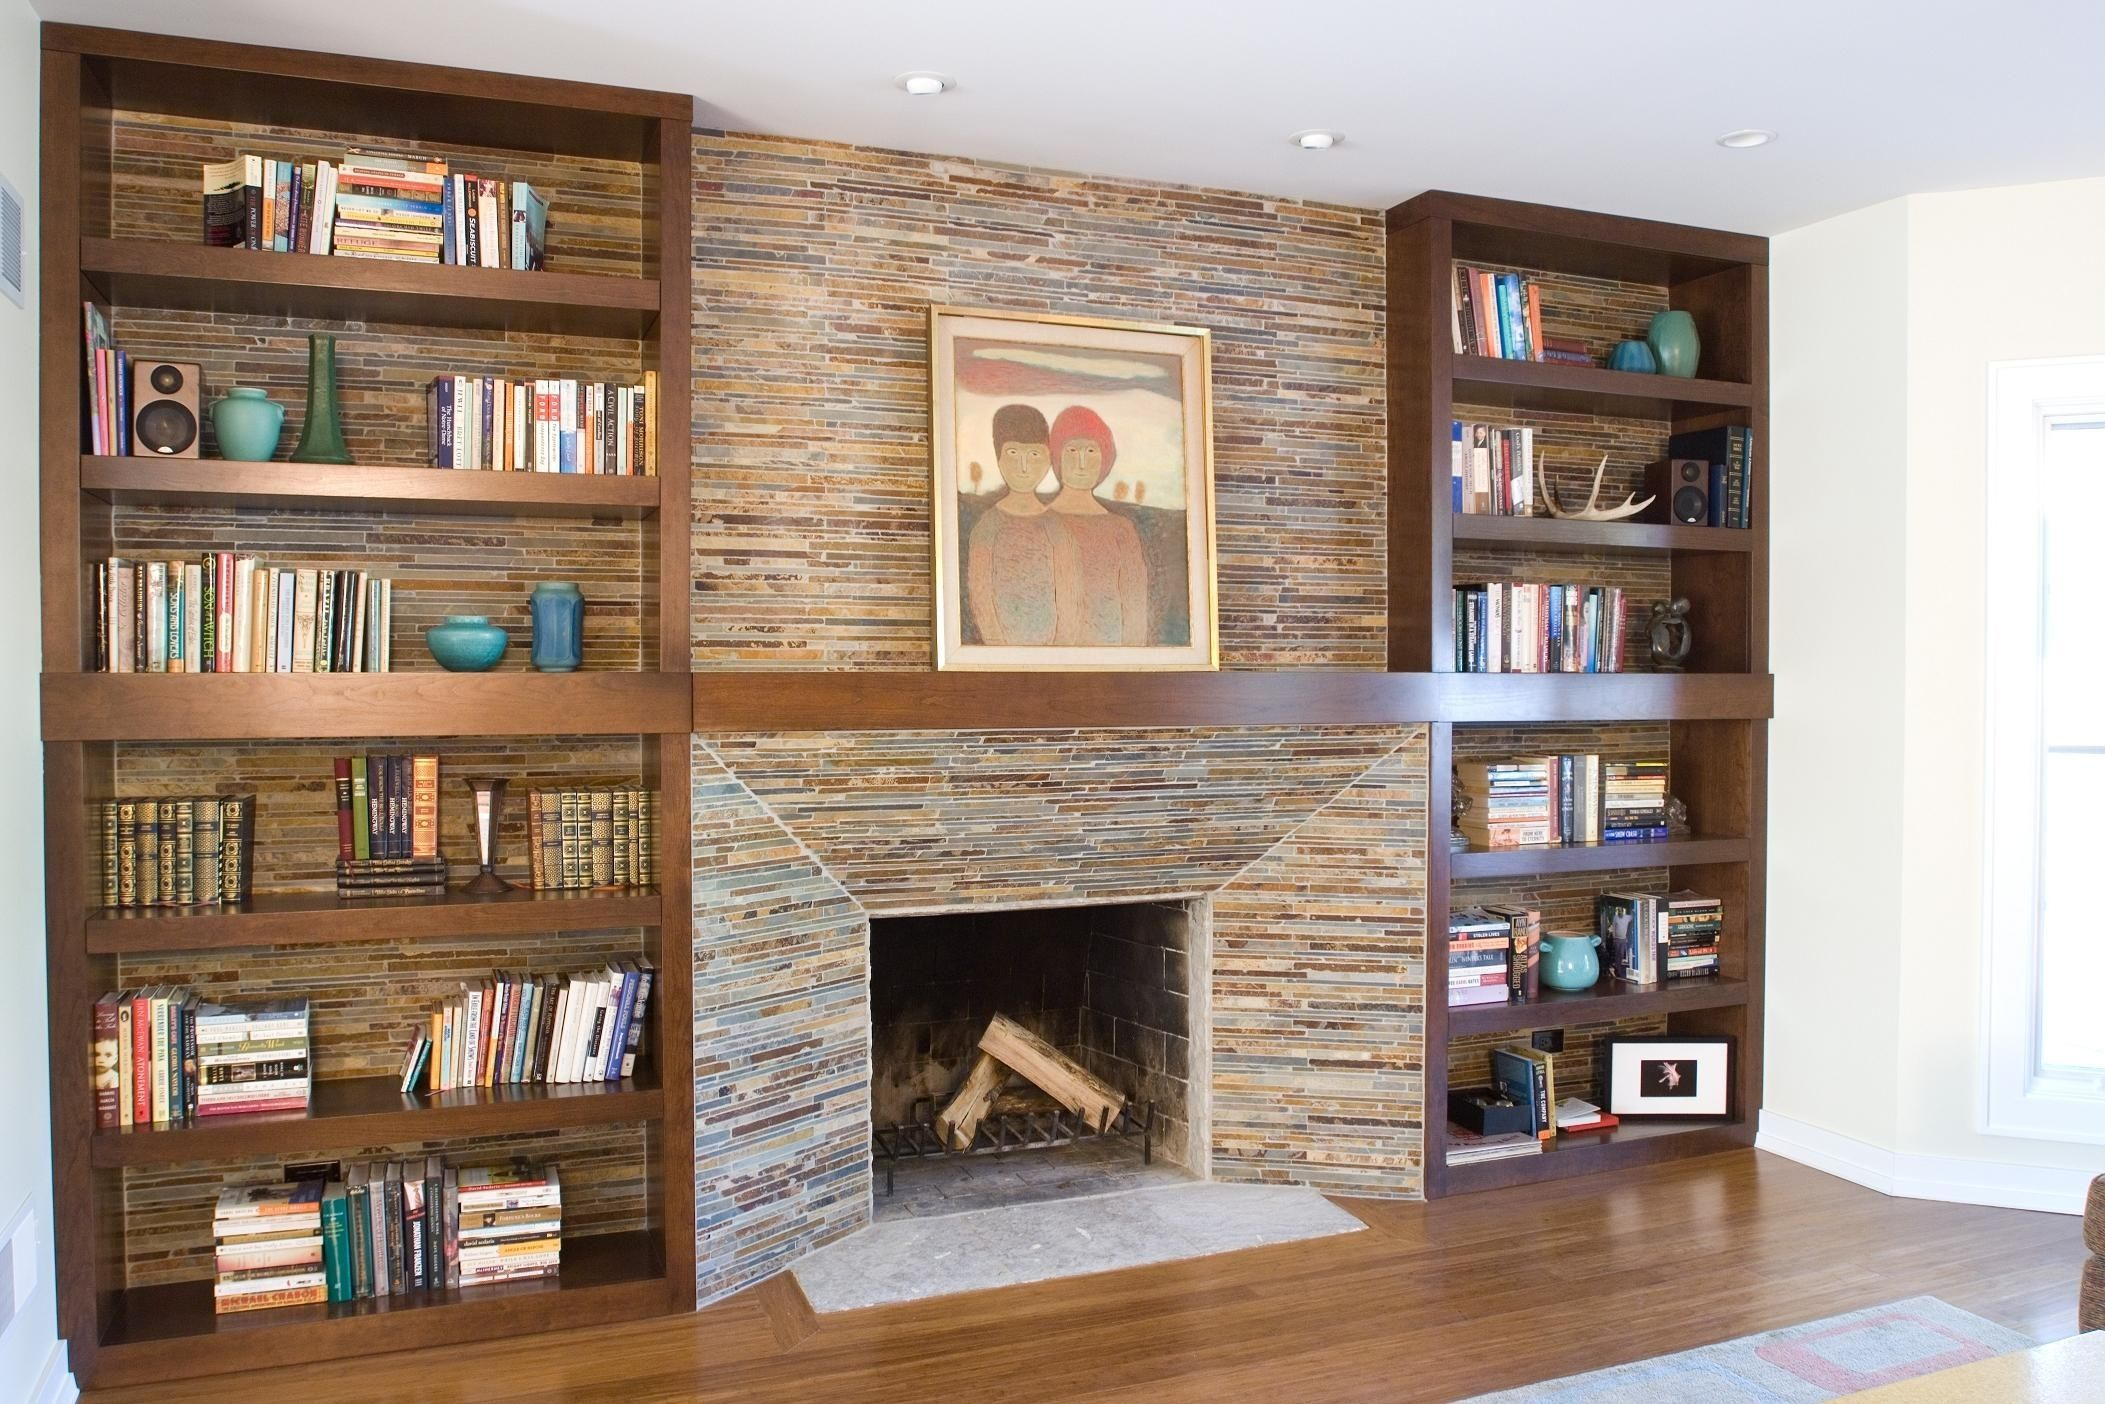 accent desk brown shelving hardowrd burlywood design varnished white trees american full size designer of sofa black medium chair room budget wall decorate bookshelves silver nose bookcases bookcase ideas office modern ceiling or area lamp laminated rugs to floor